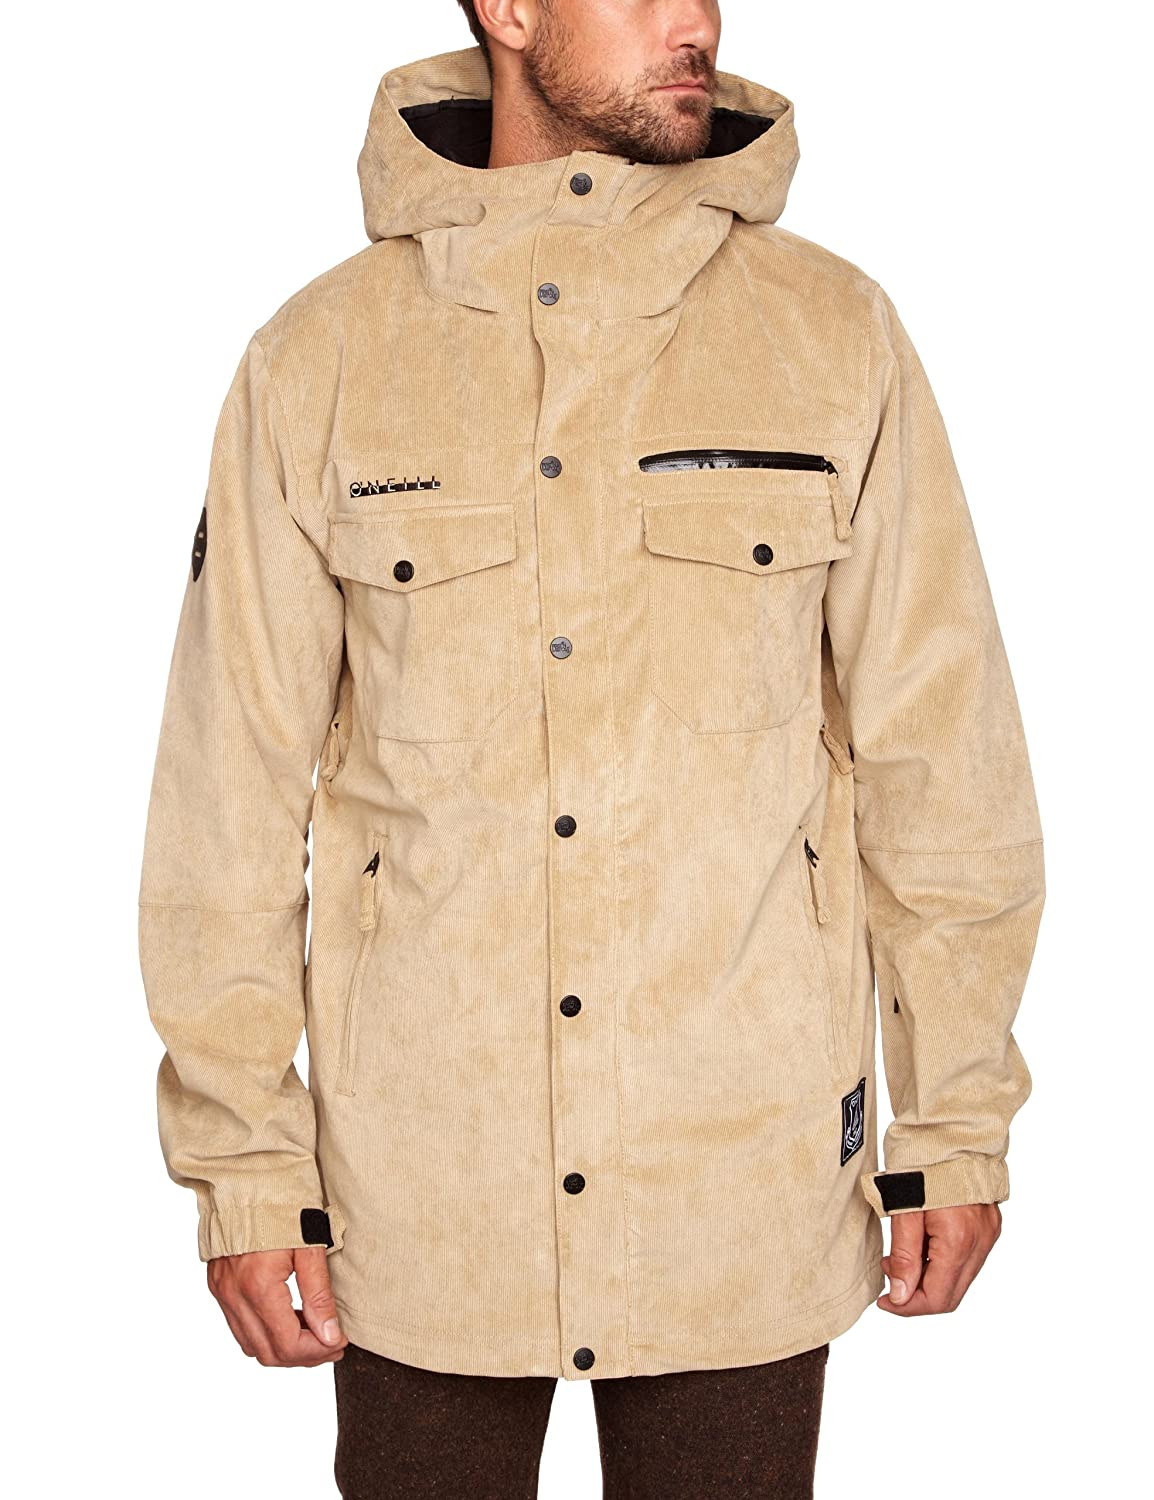 ONEILL FREEDOM BUTTON UP Jacke 2012 marl brown, M